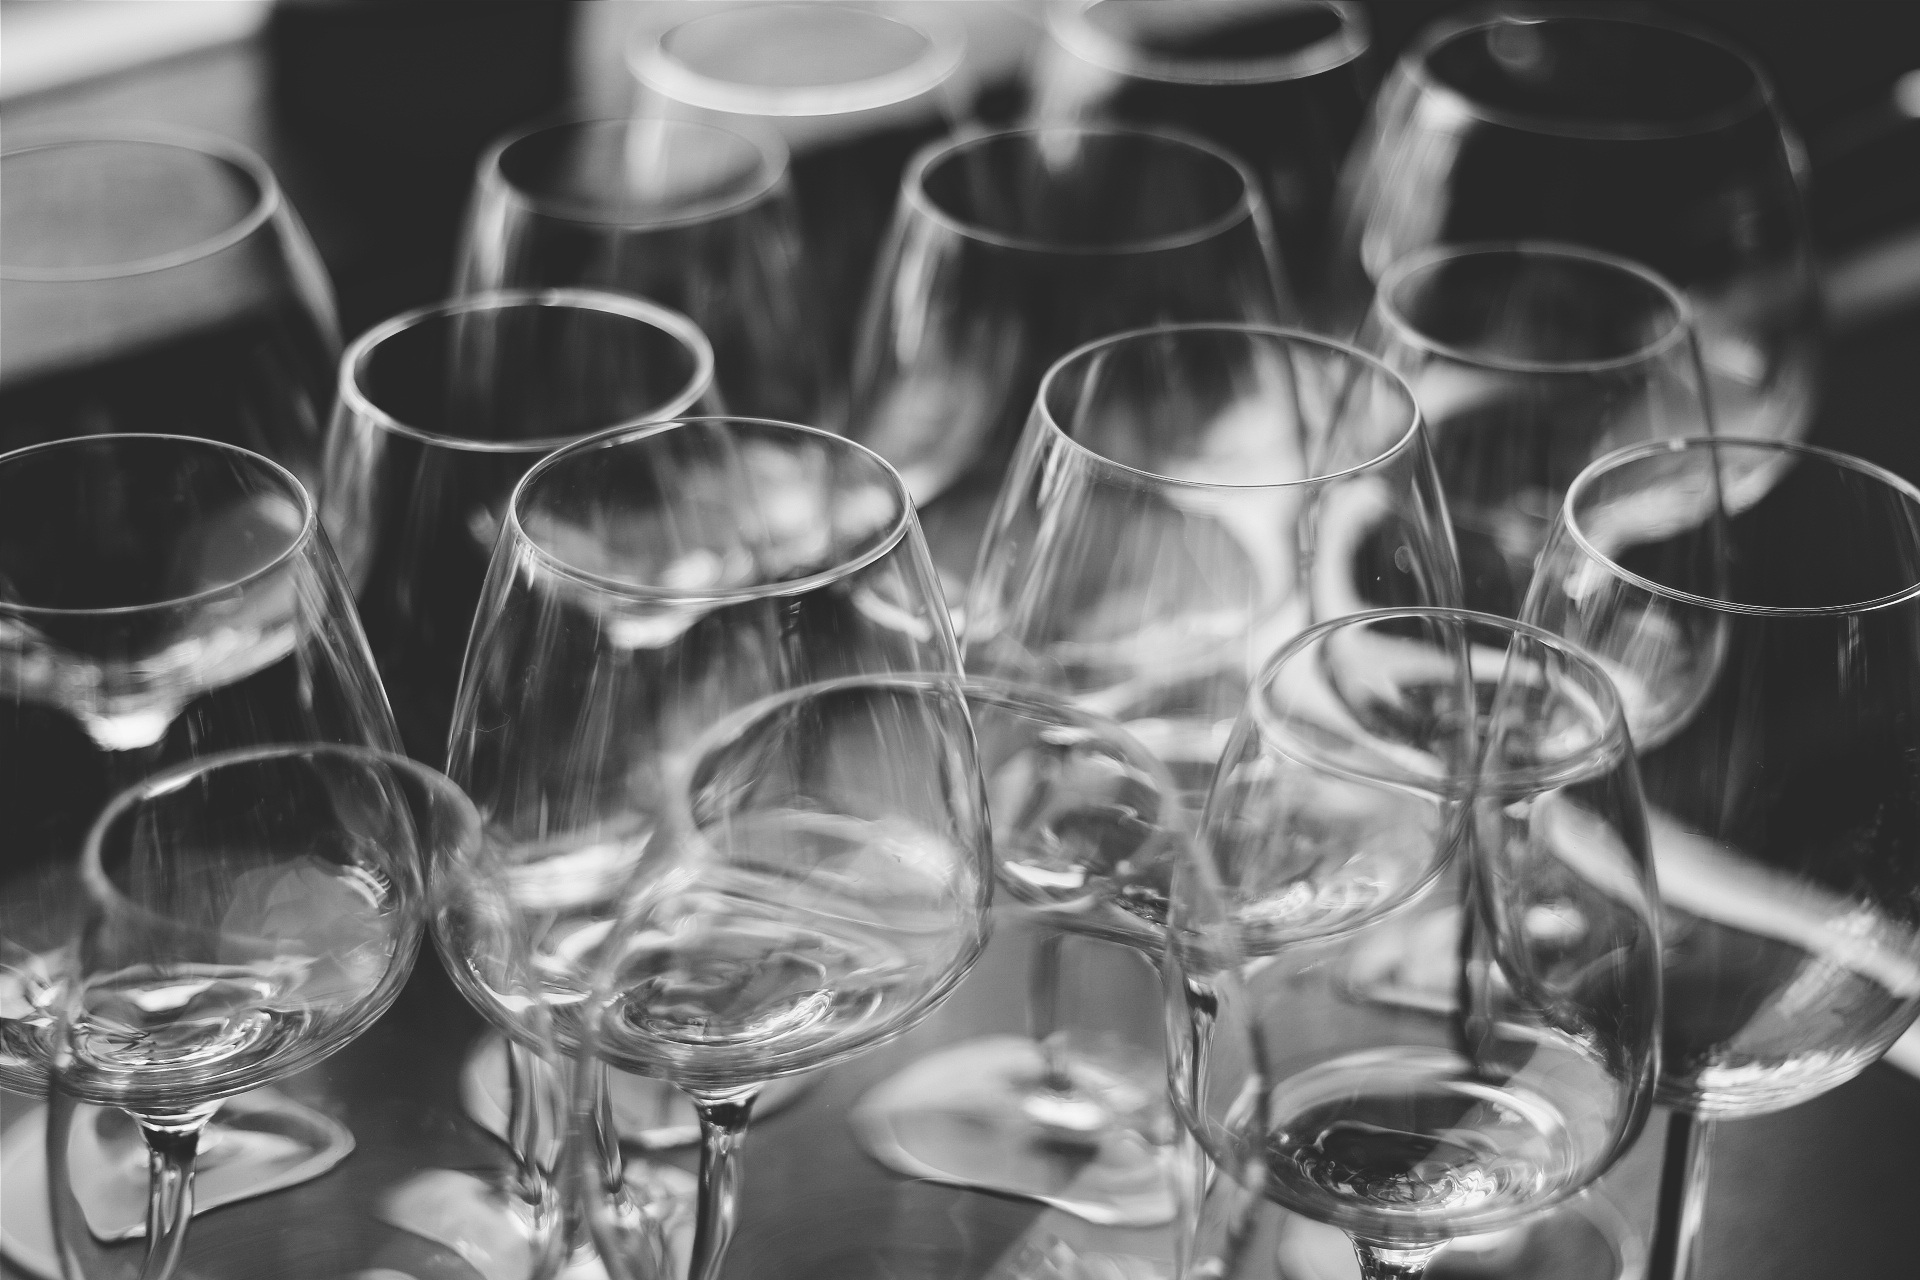 The links between alcohol and mental health